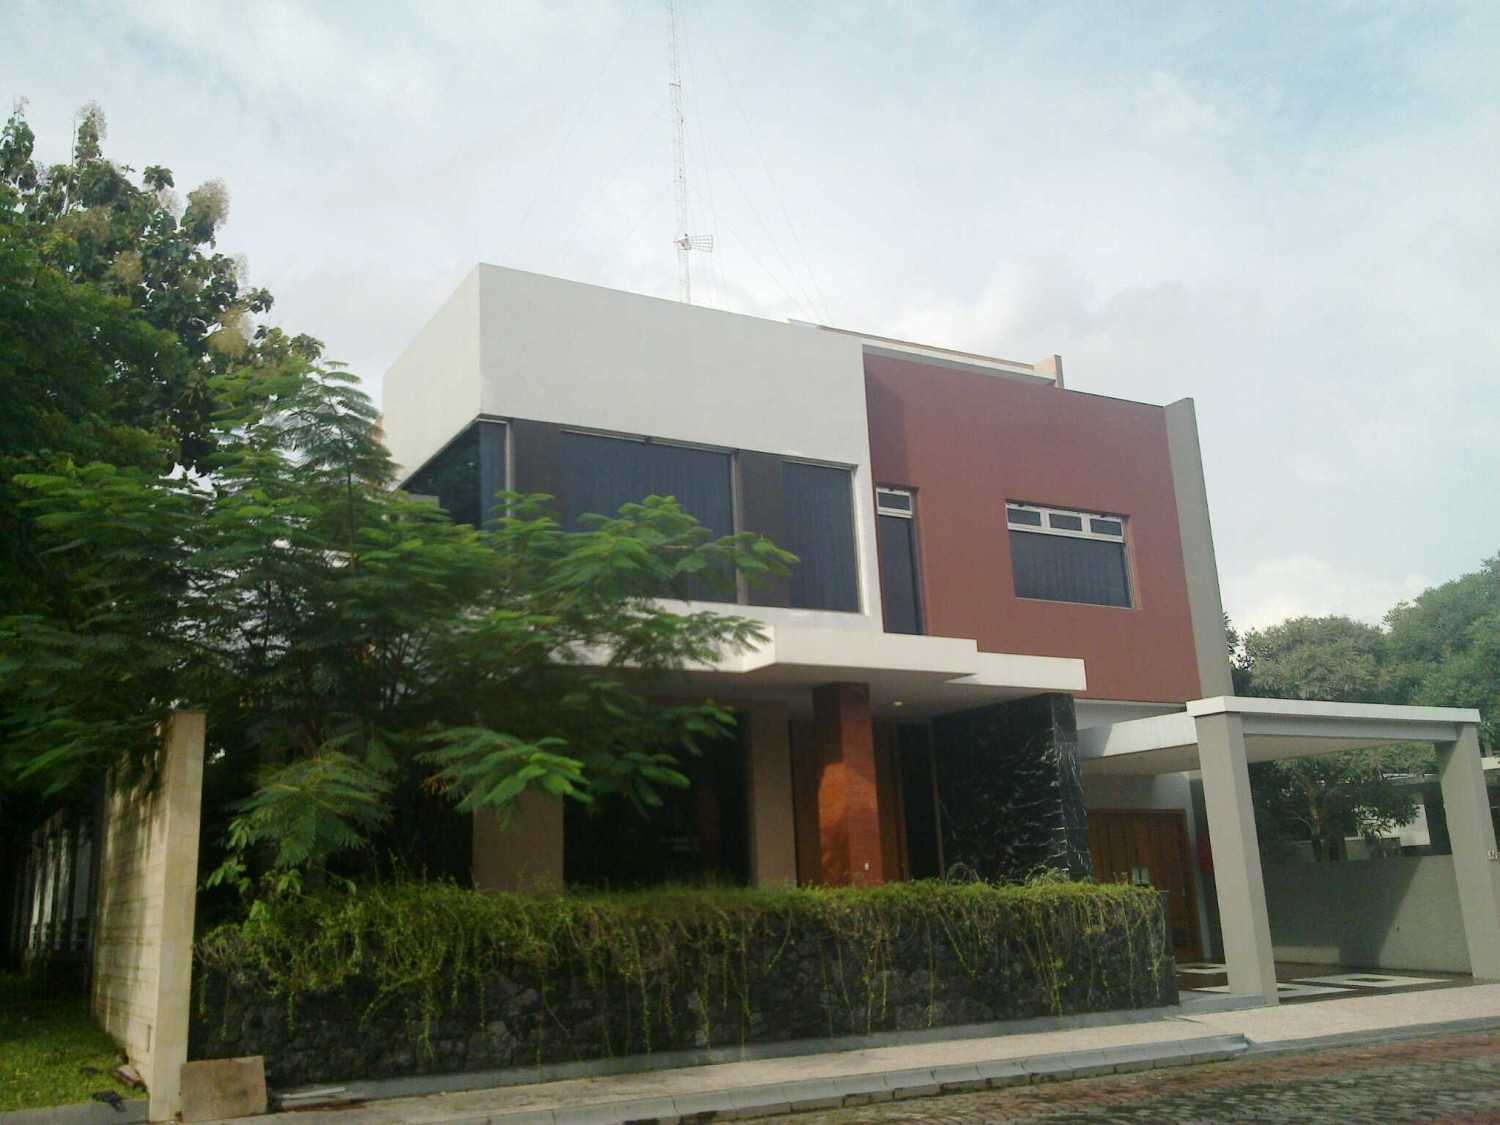 Jasa Design and Build Aditya Wijaya / Studio indirakasa di Yogyakarta